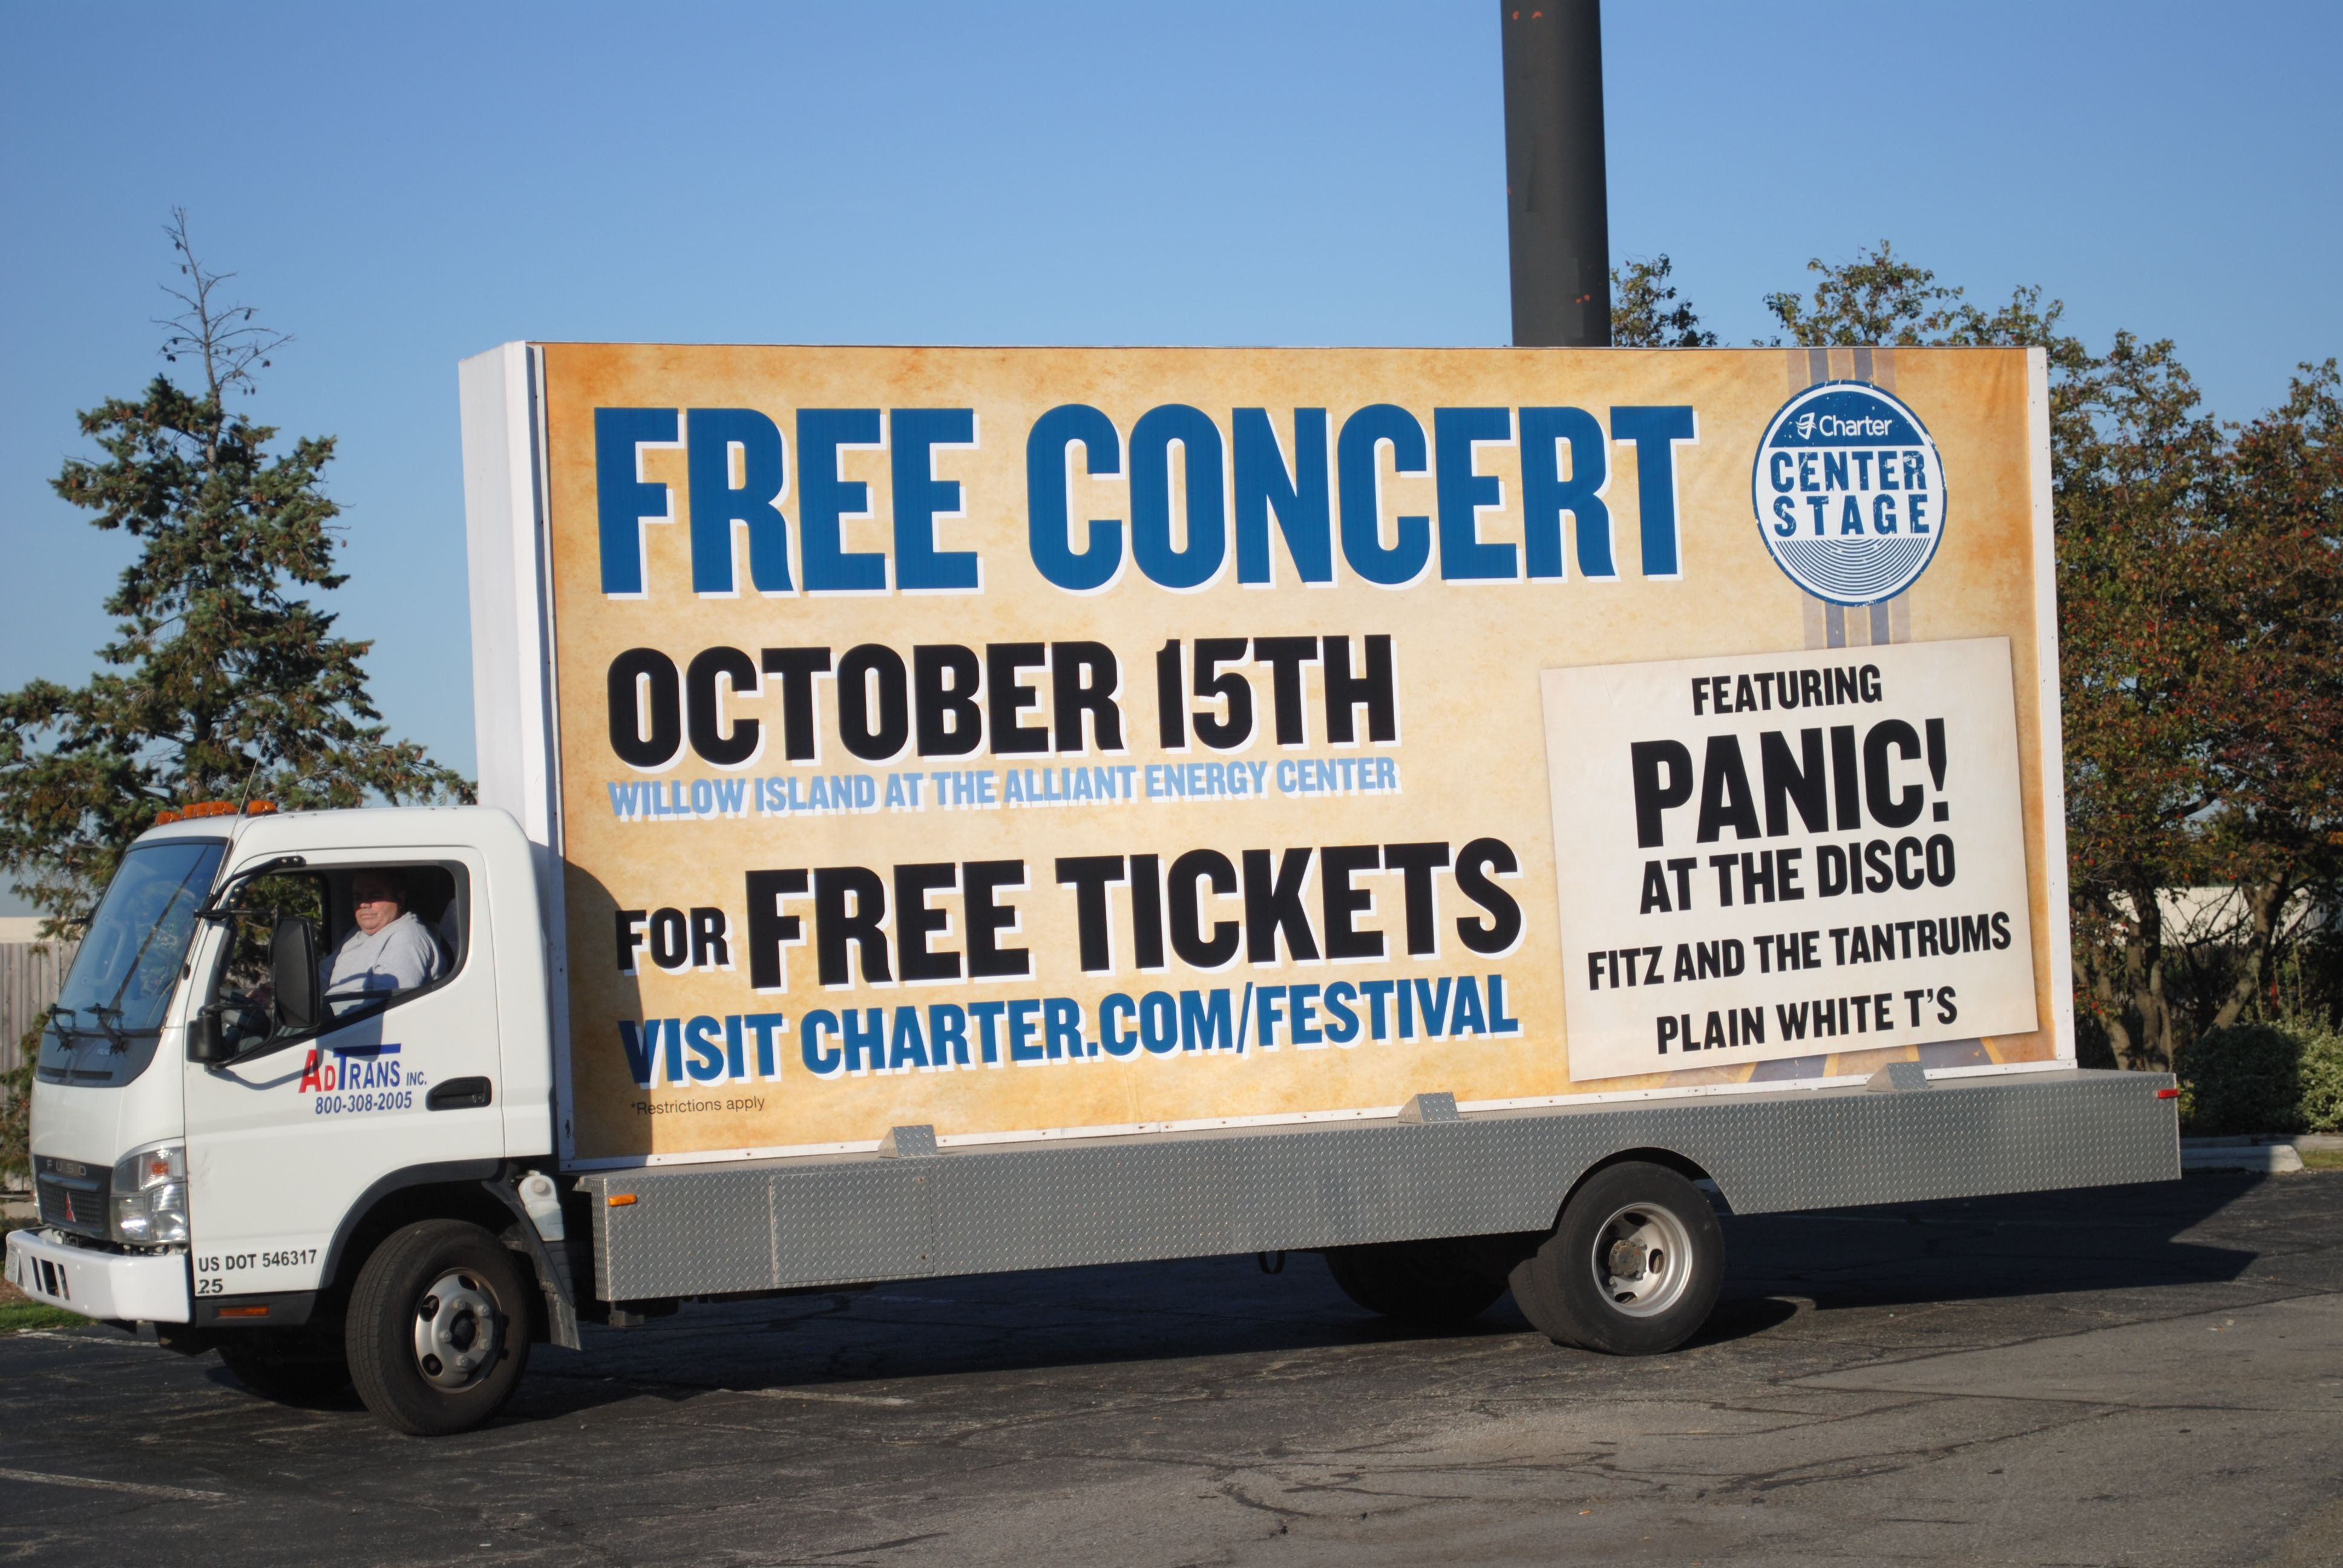 Advertising A Free Concert For Panic At The Disco With Mobile Billboard